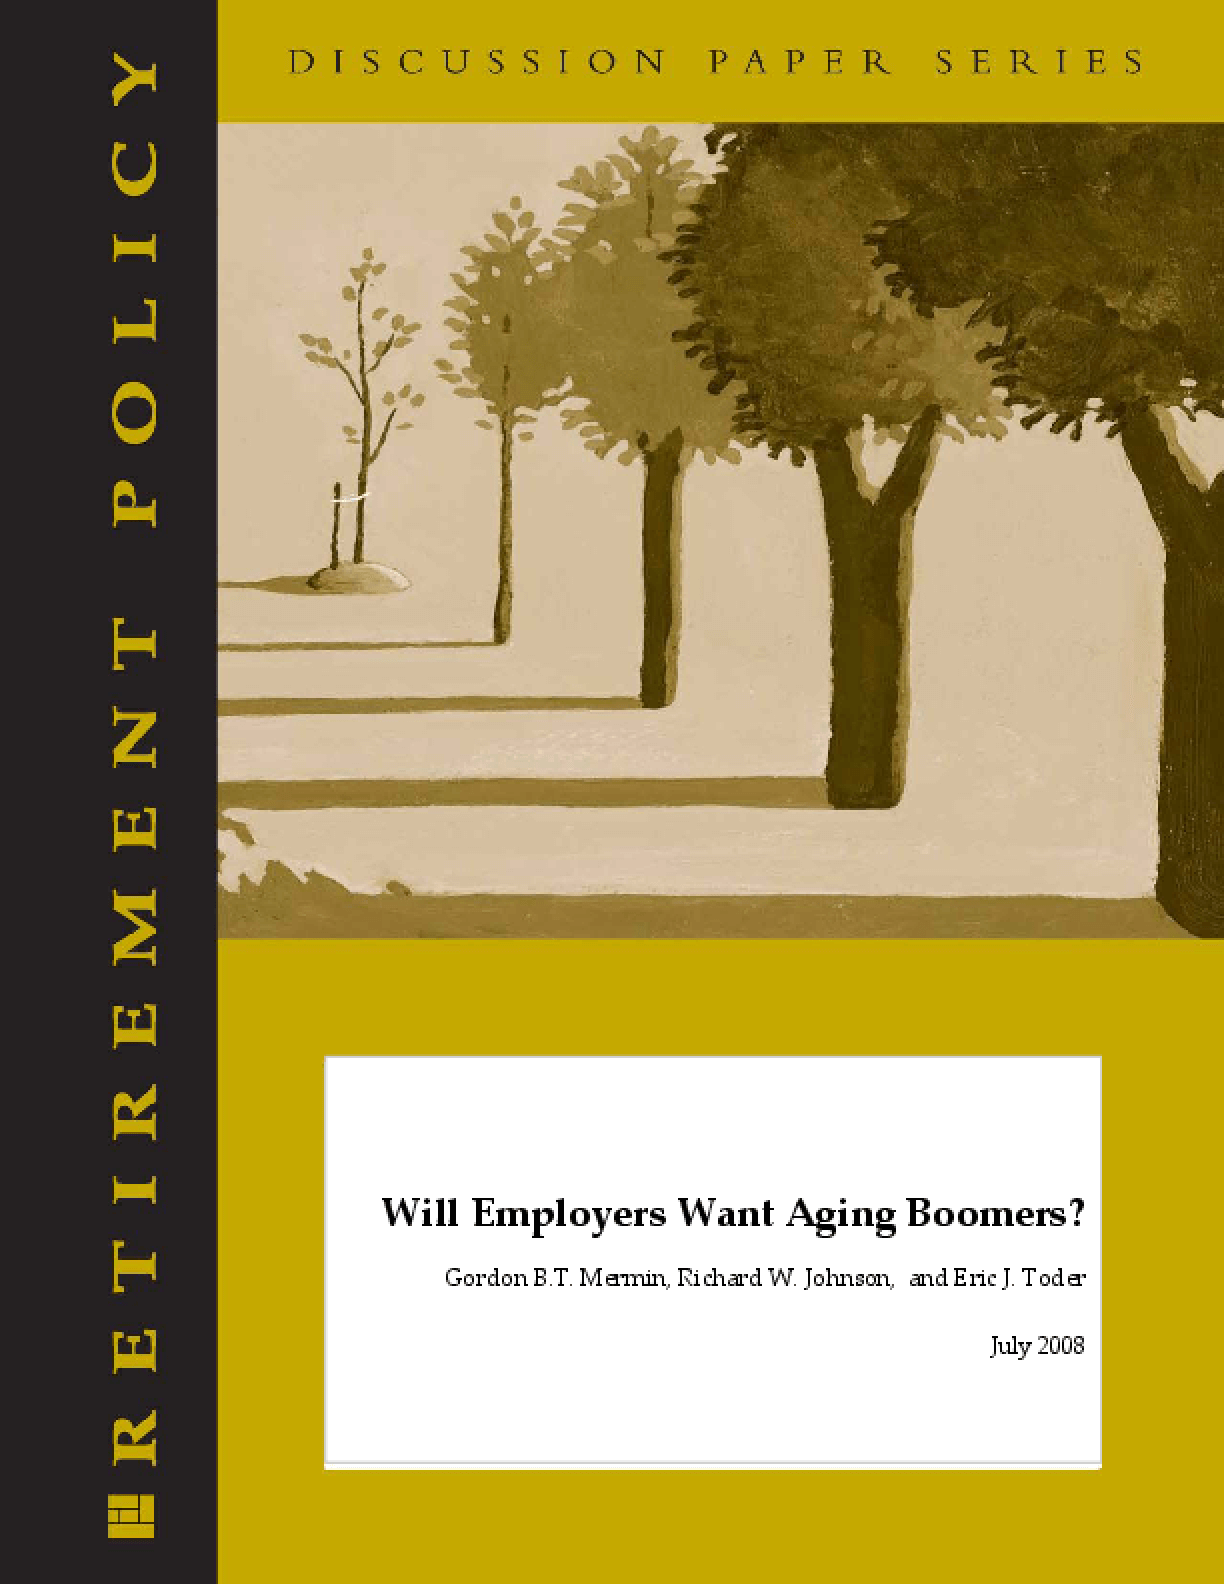 Will Employers Want Aging Boomers?